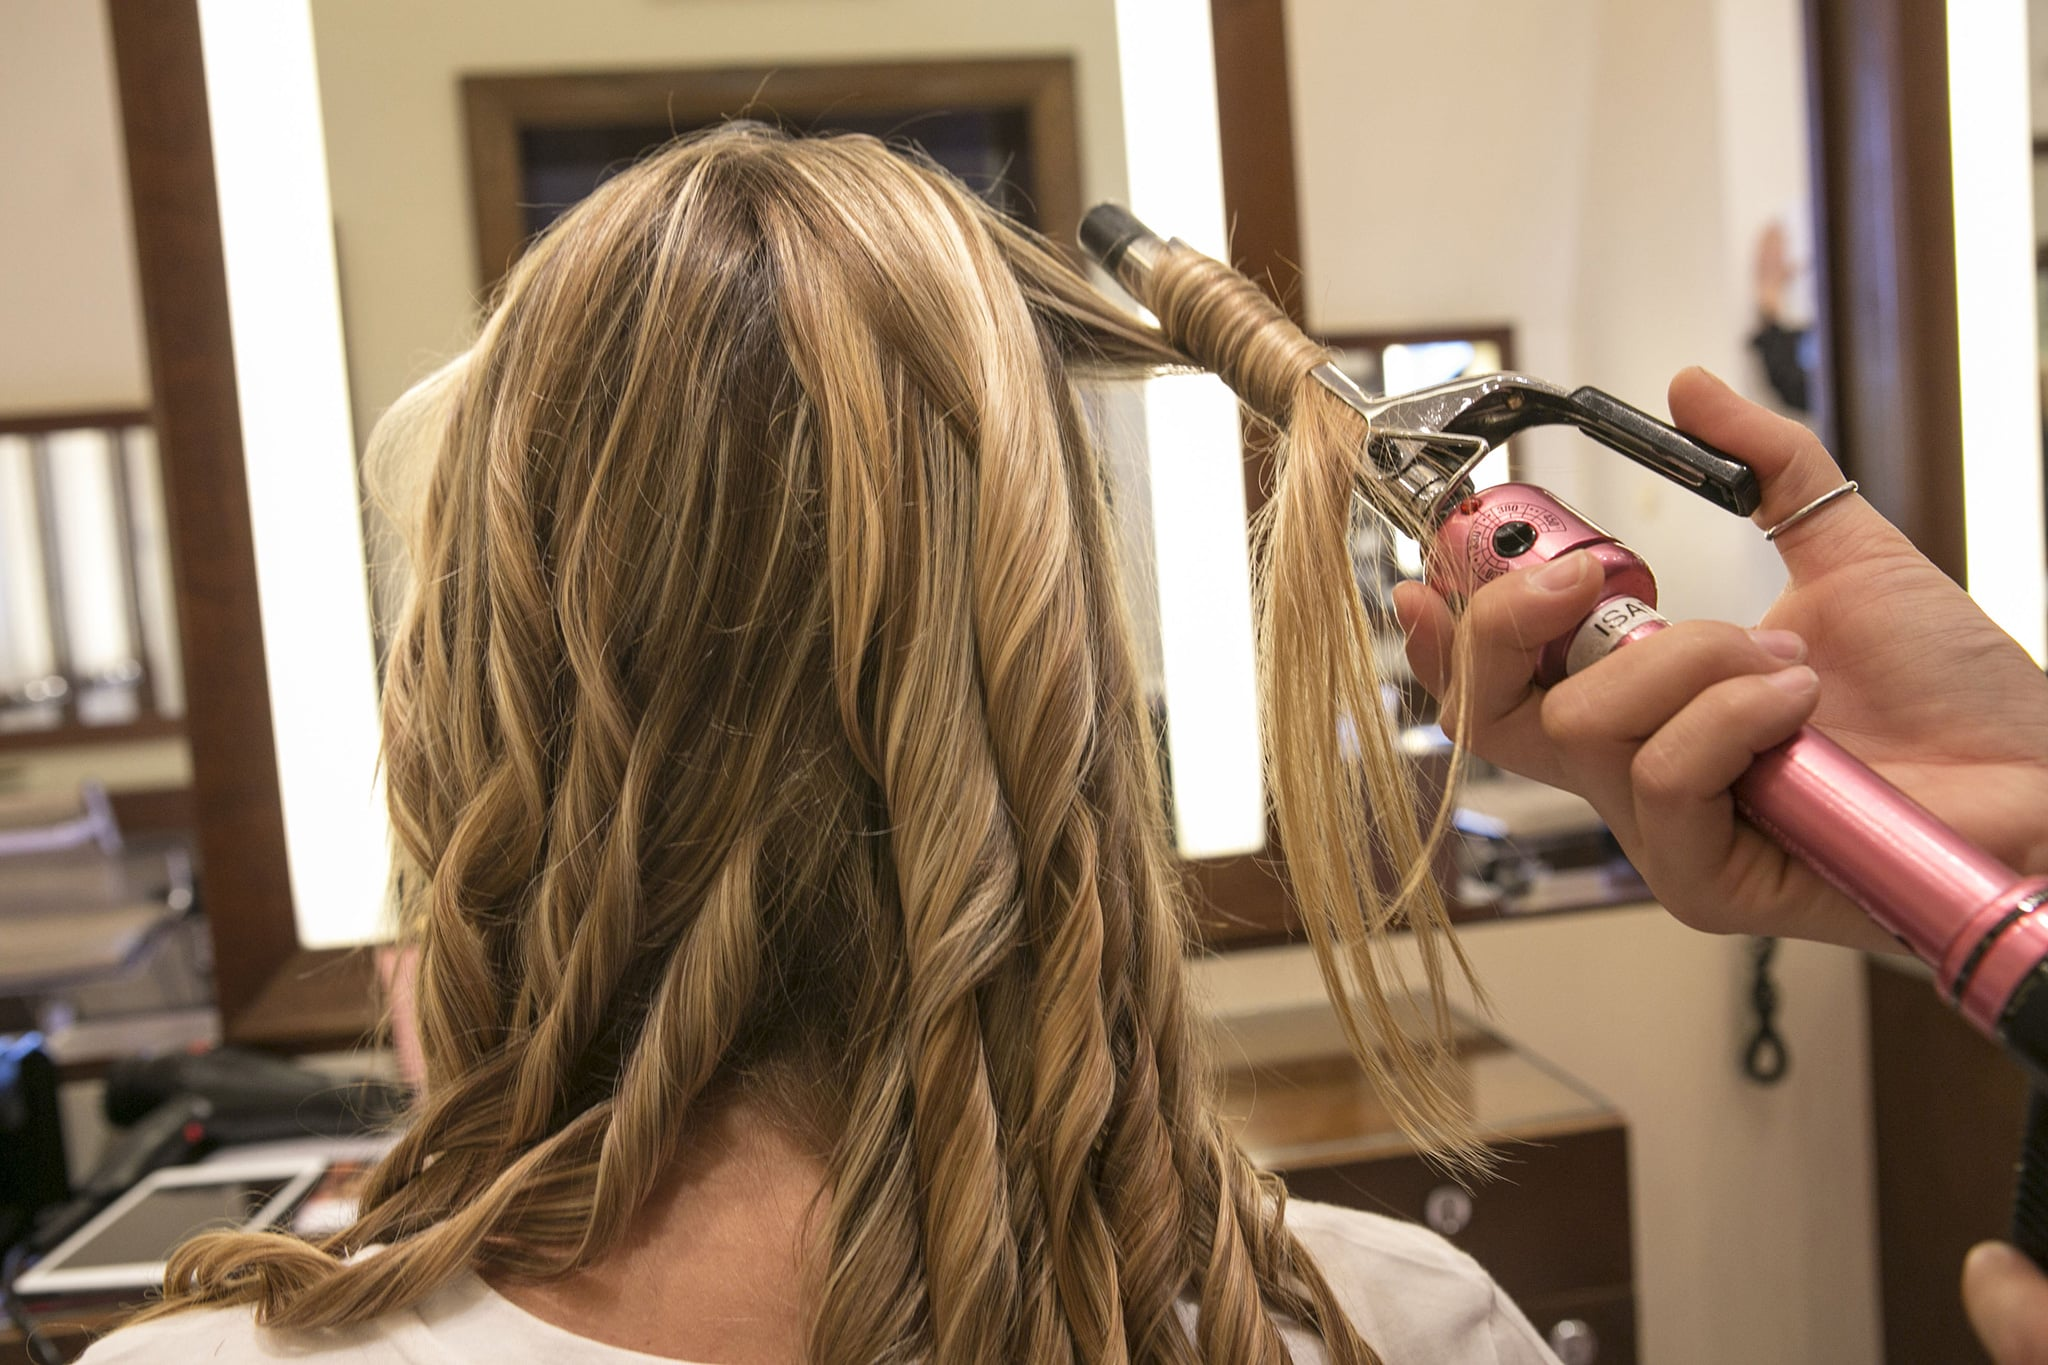 If you already have natural texture, start off with air-dried hair. Otherwise, run a curling iron through your strands to give yourself a textured base.